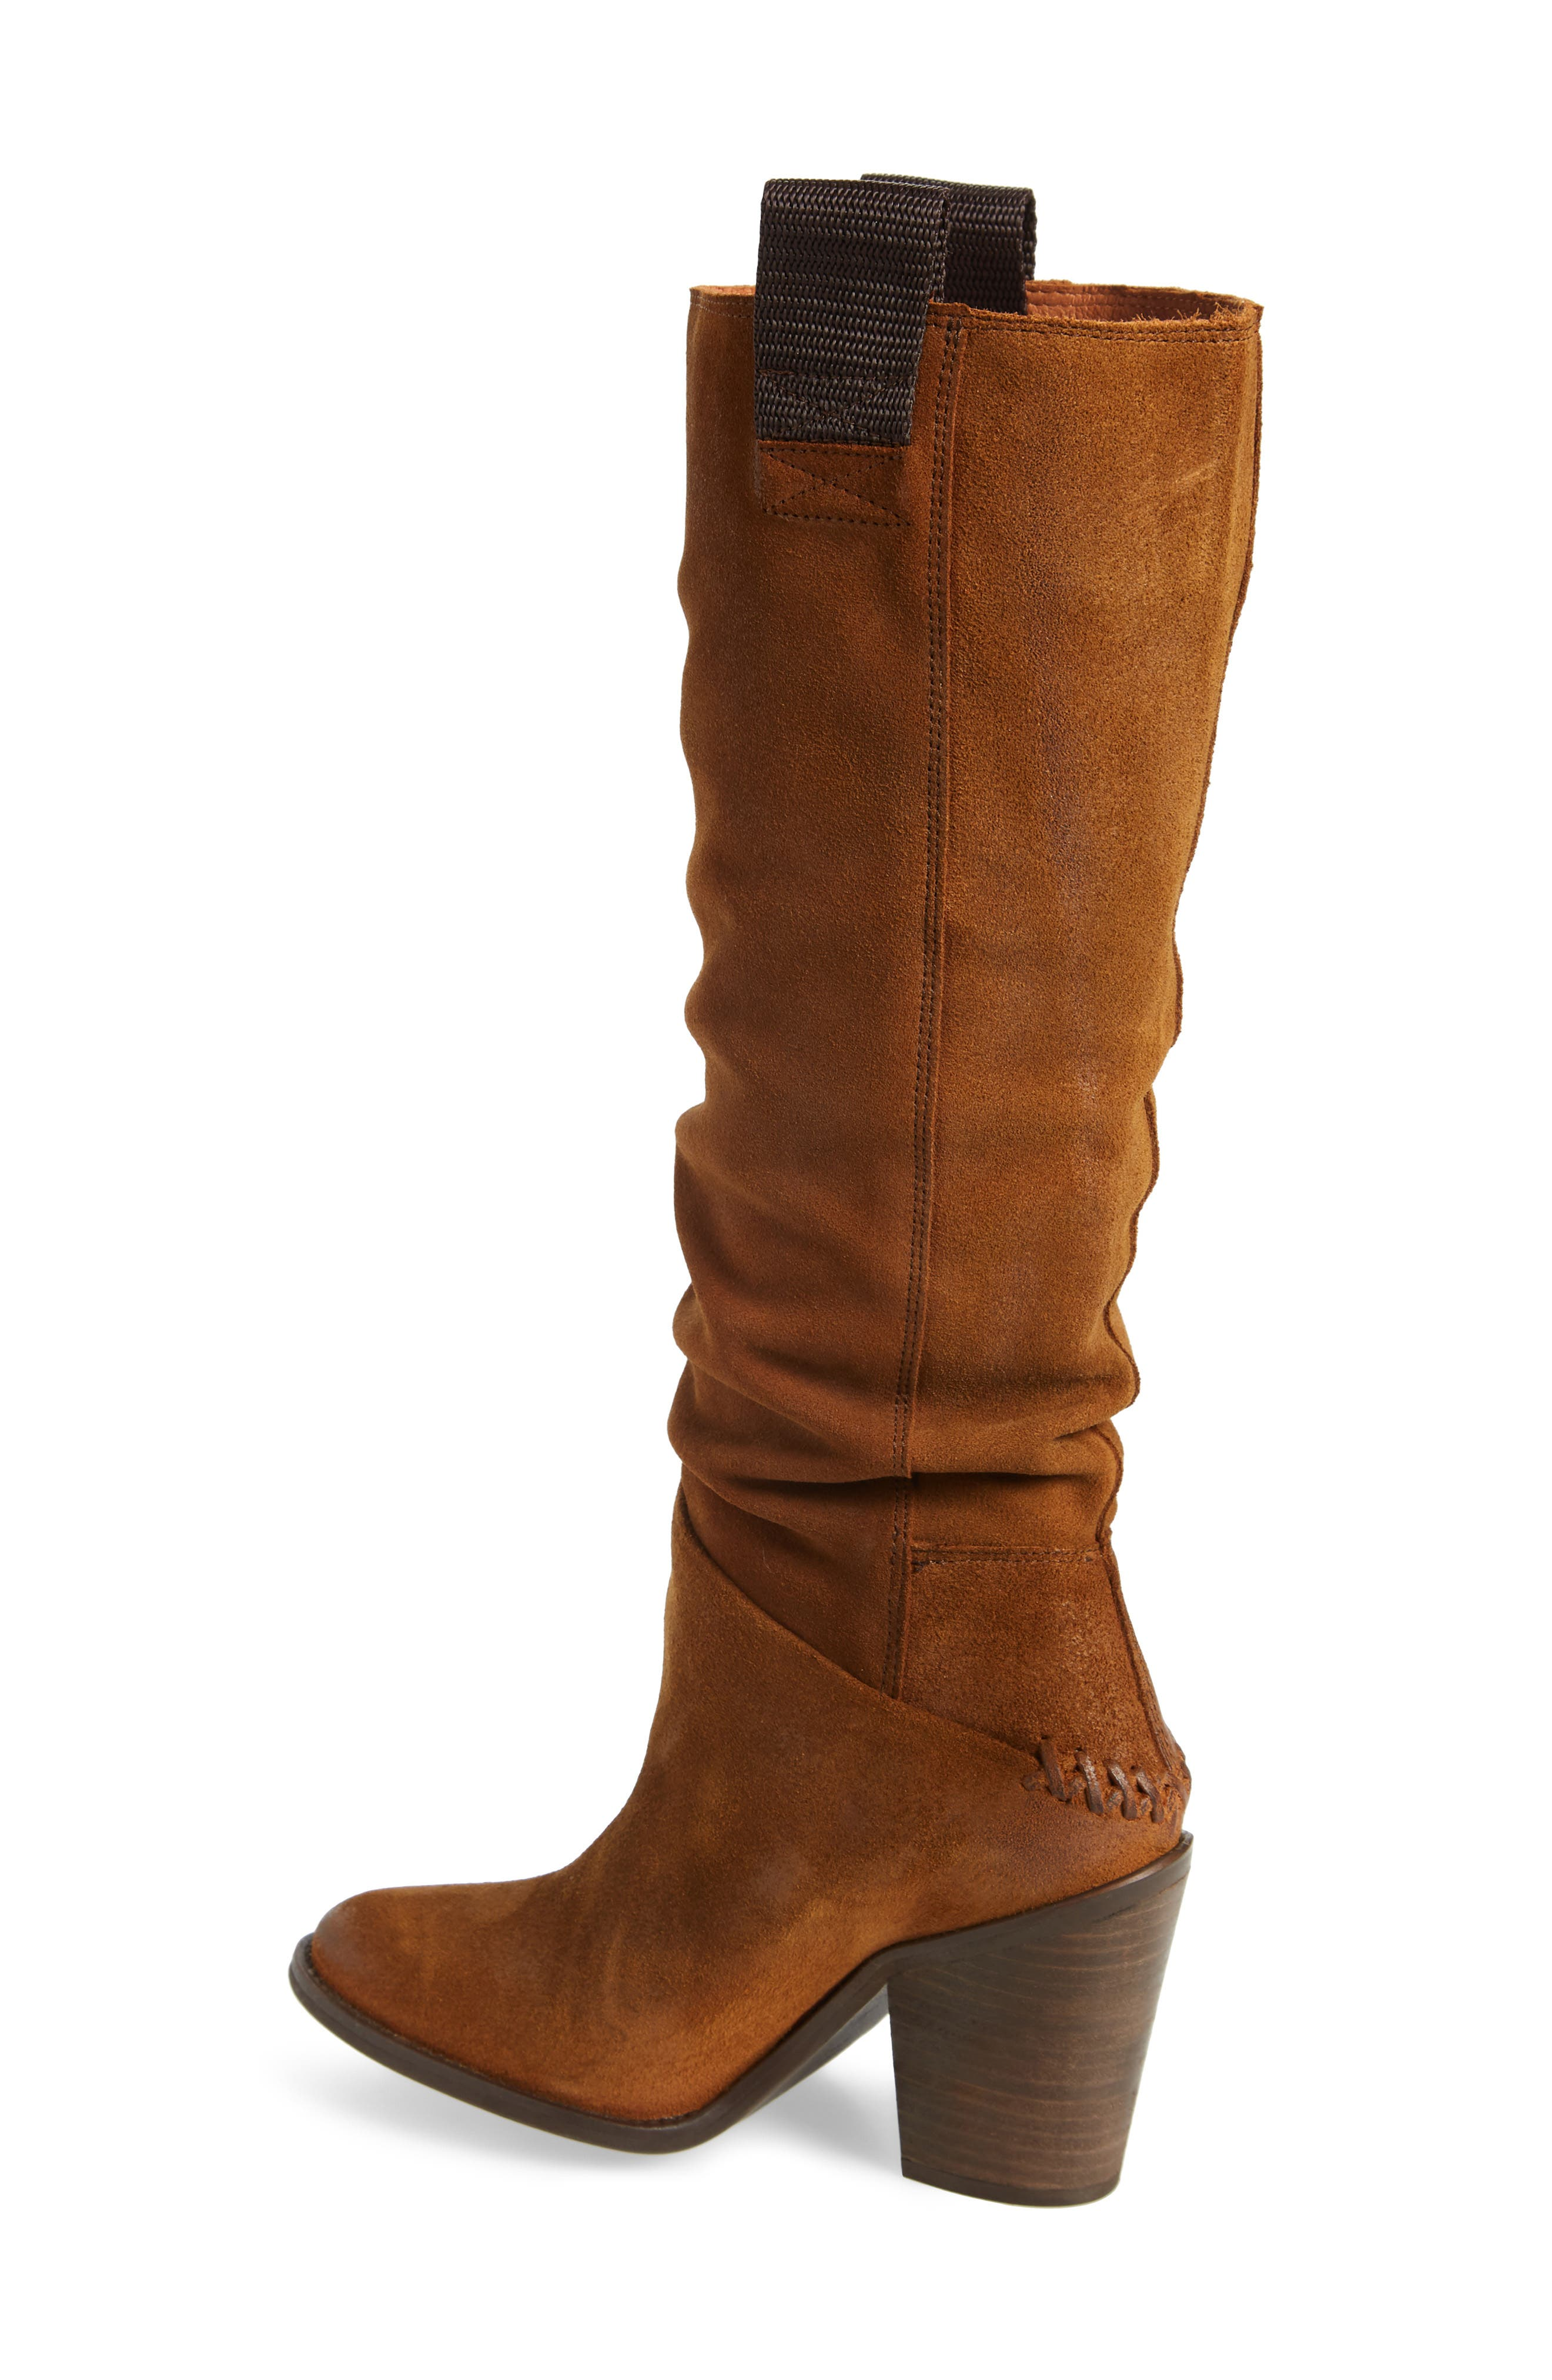 FREE PEOPLE,                             Montgomery Knee High Boot,                             Alternate thumbnail 2, color,                             200